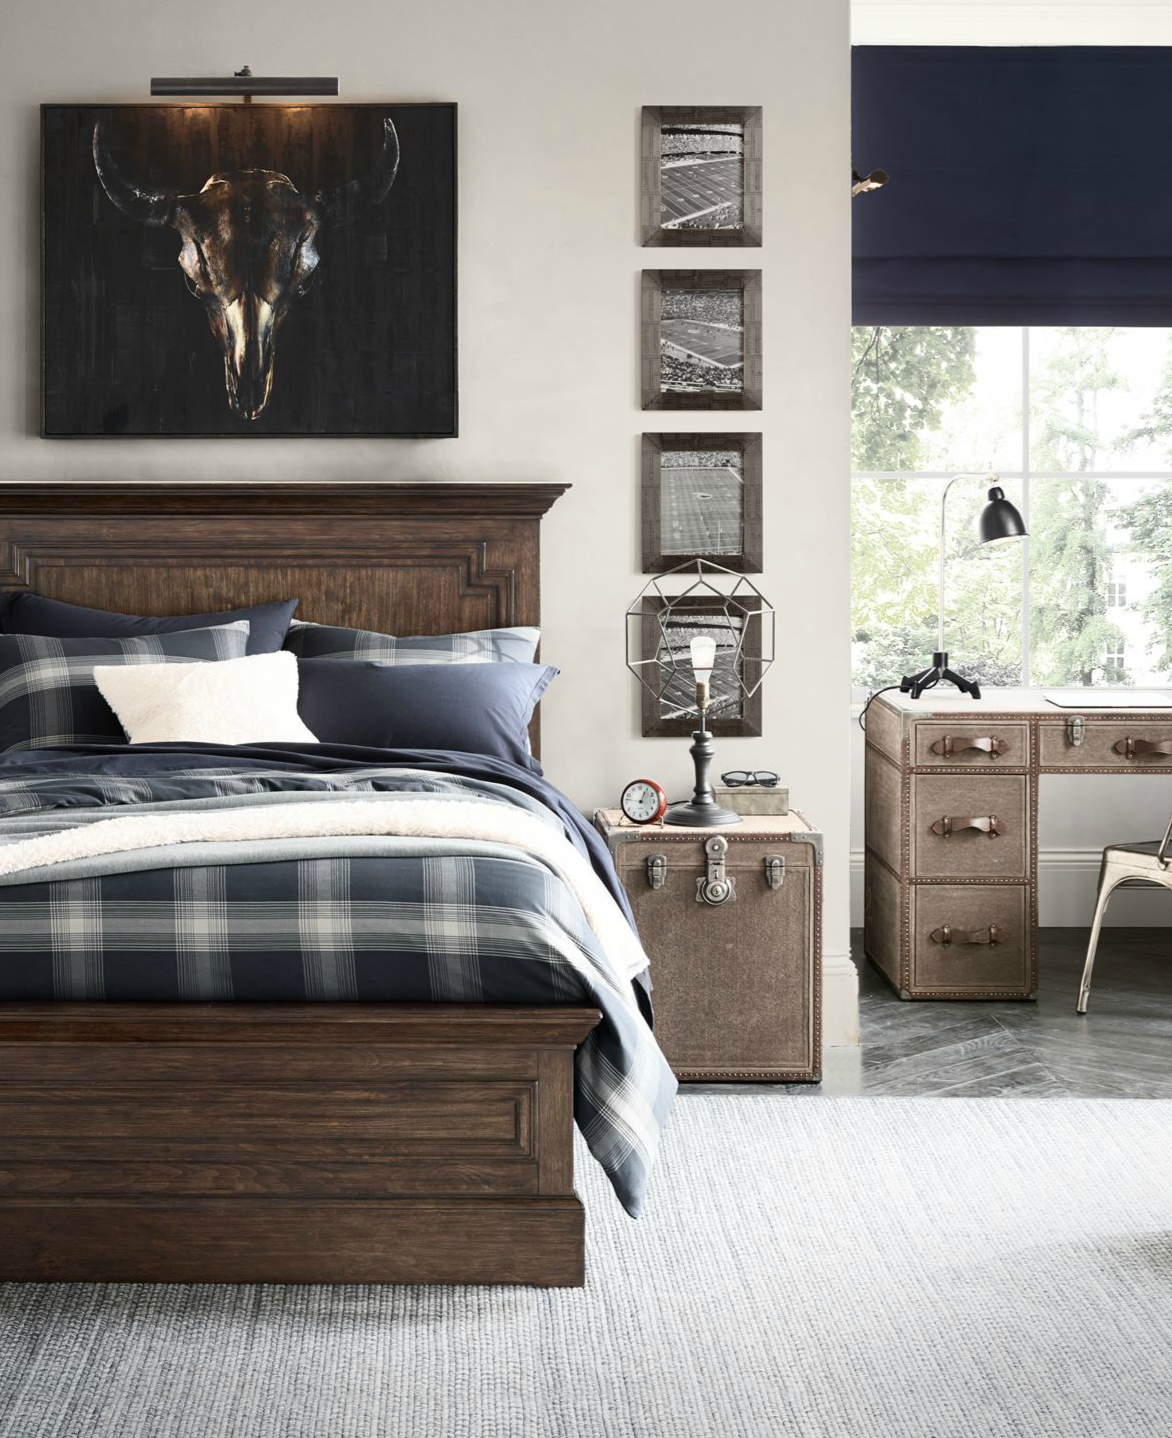 Delightful Classic Décor And Sported Themed Accents Make For A Timeless Boyu0027s Bedroom